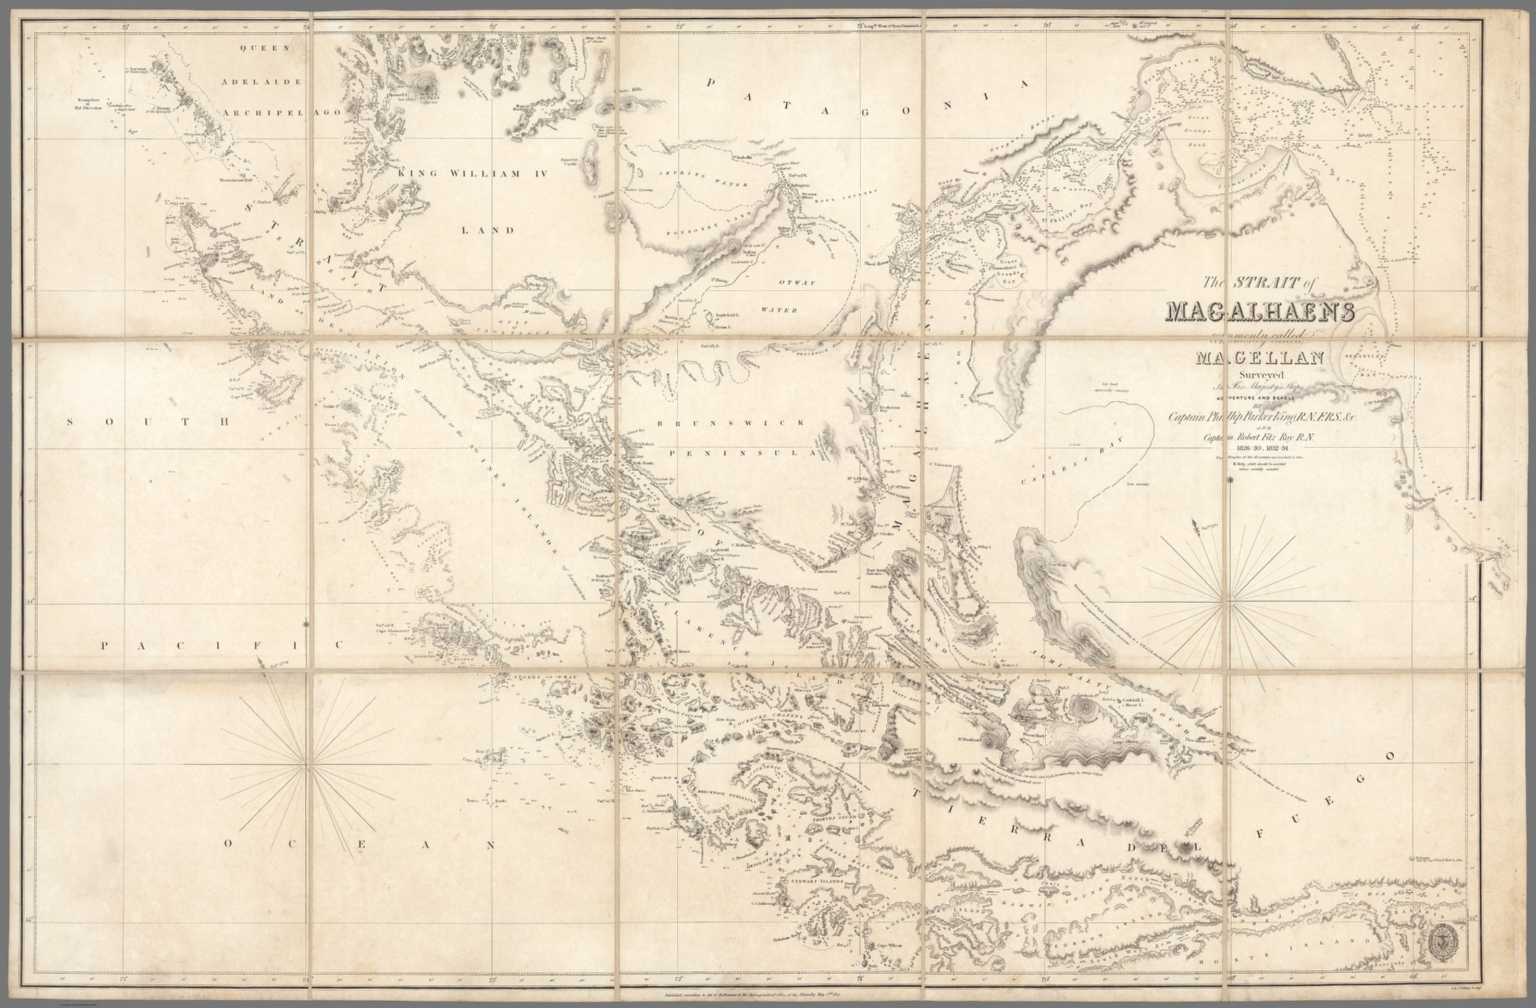 The Strait of Magalhaens commonly called Magellan